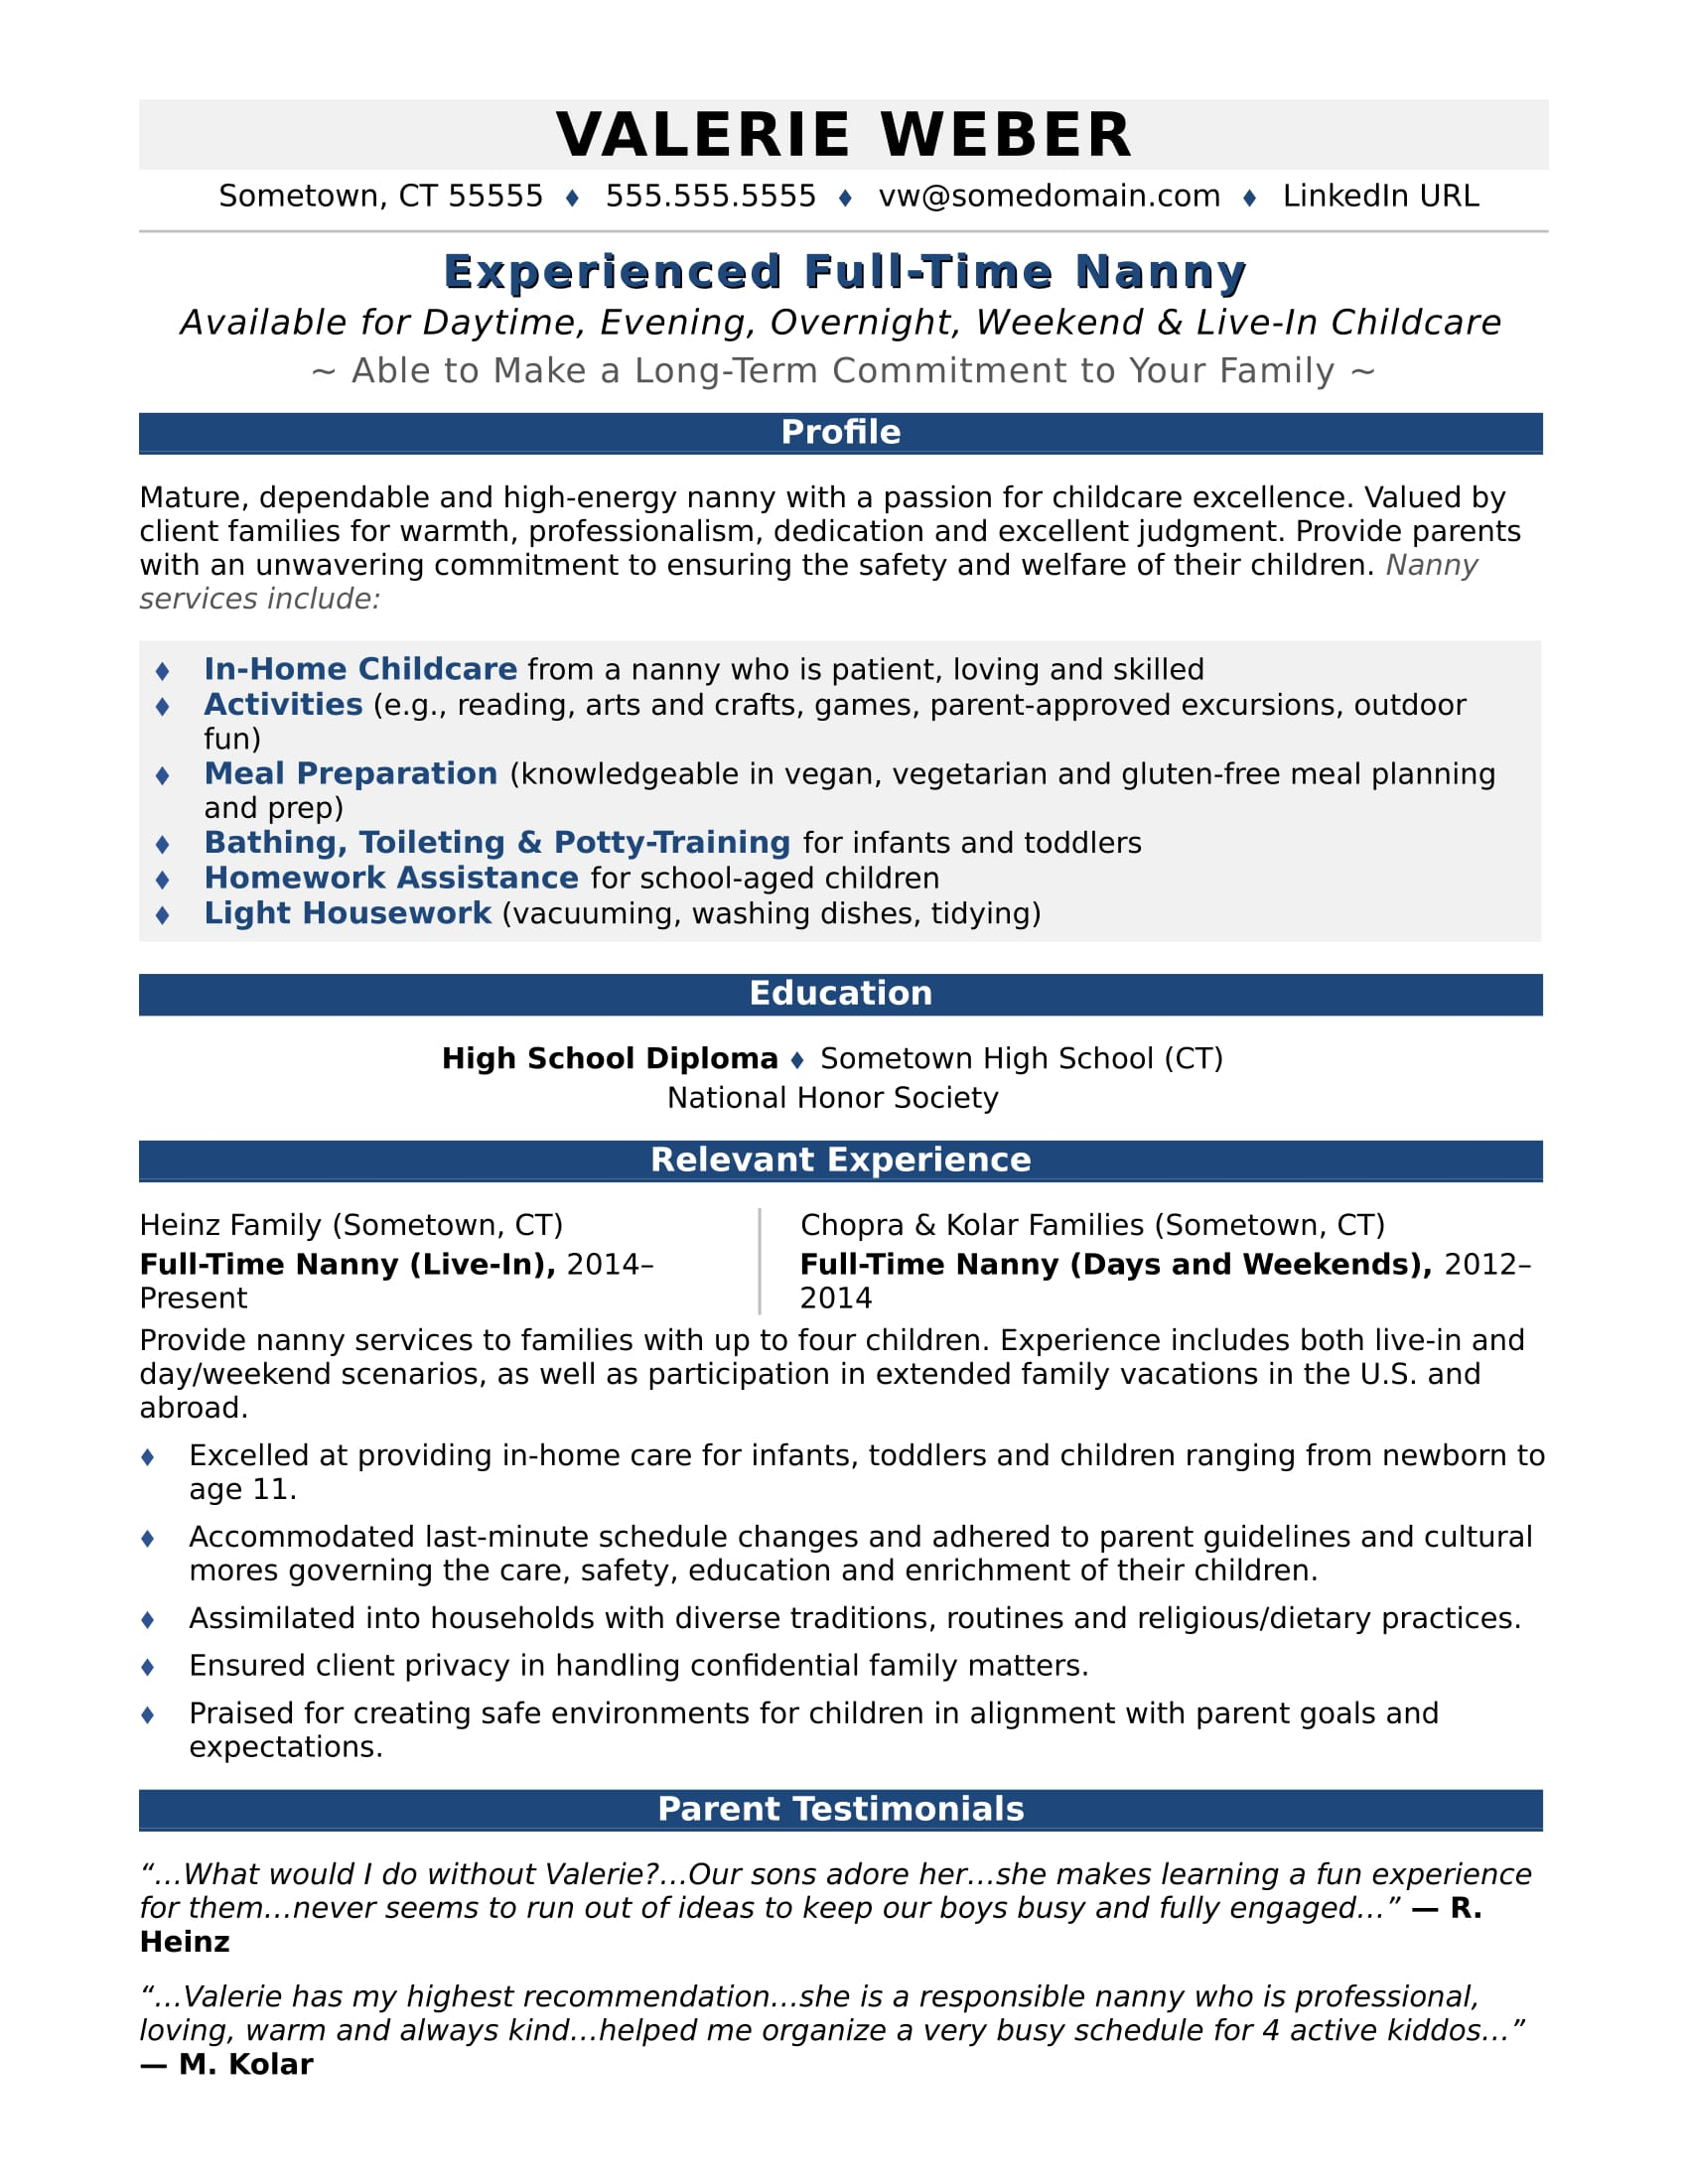 nanny resume sample - Nanny Resume Sample